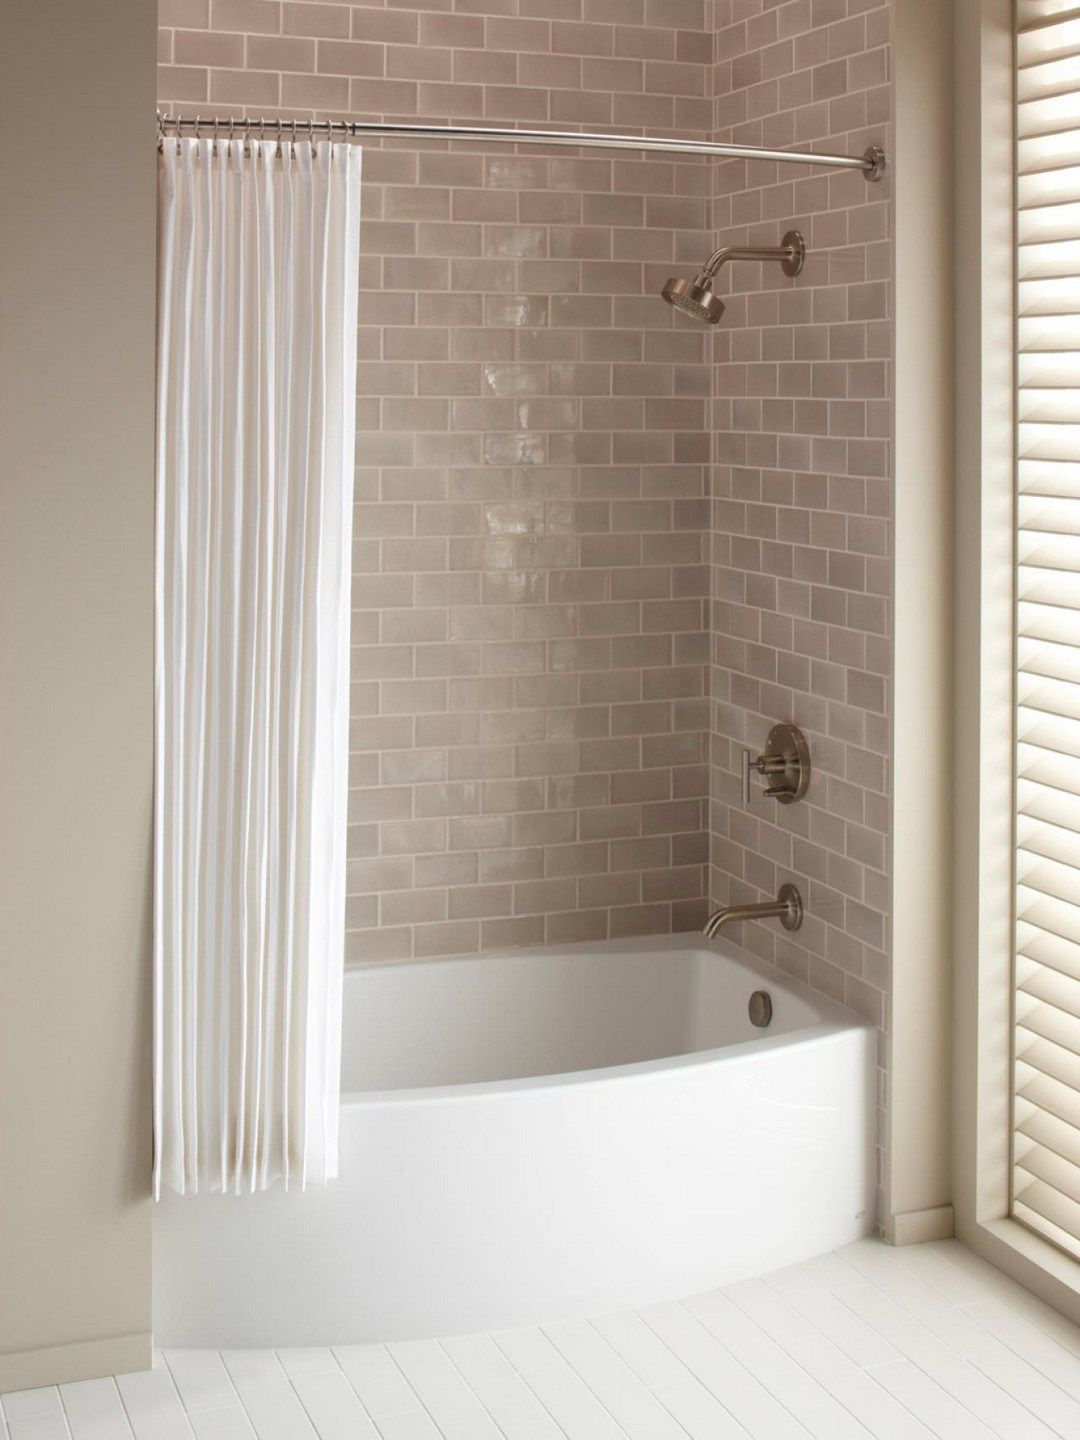 99 Small Bathroom Tub Shower Combo Remodeling Ideas (37) | Make over ...